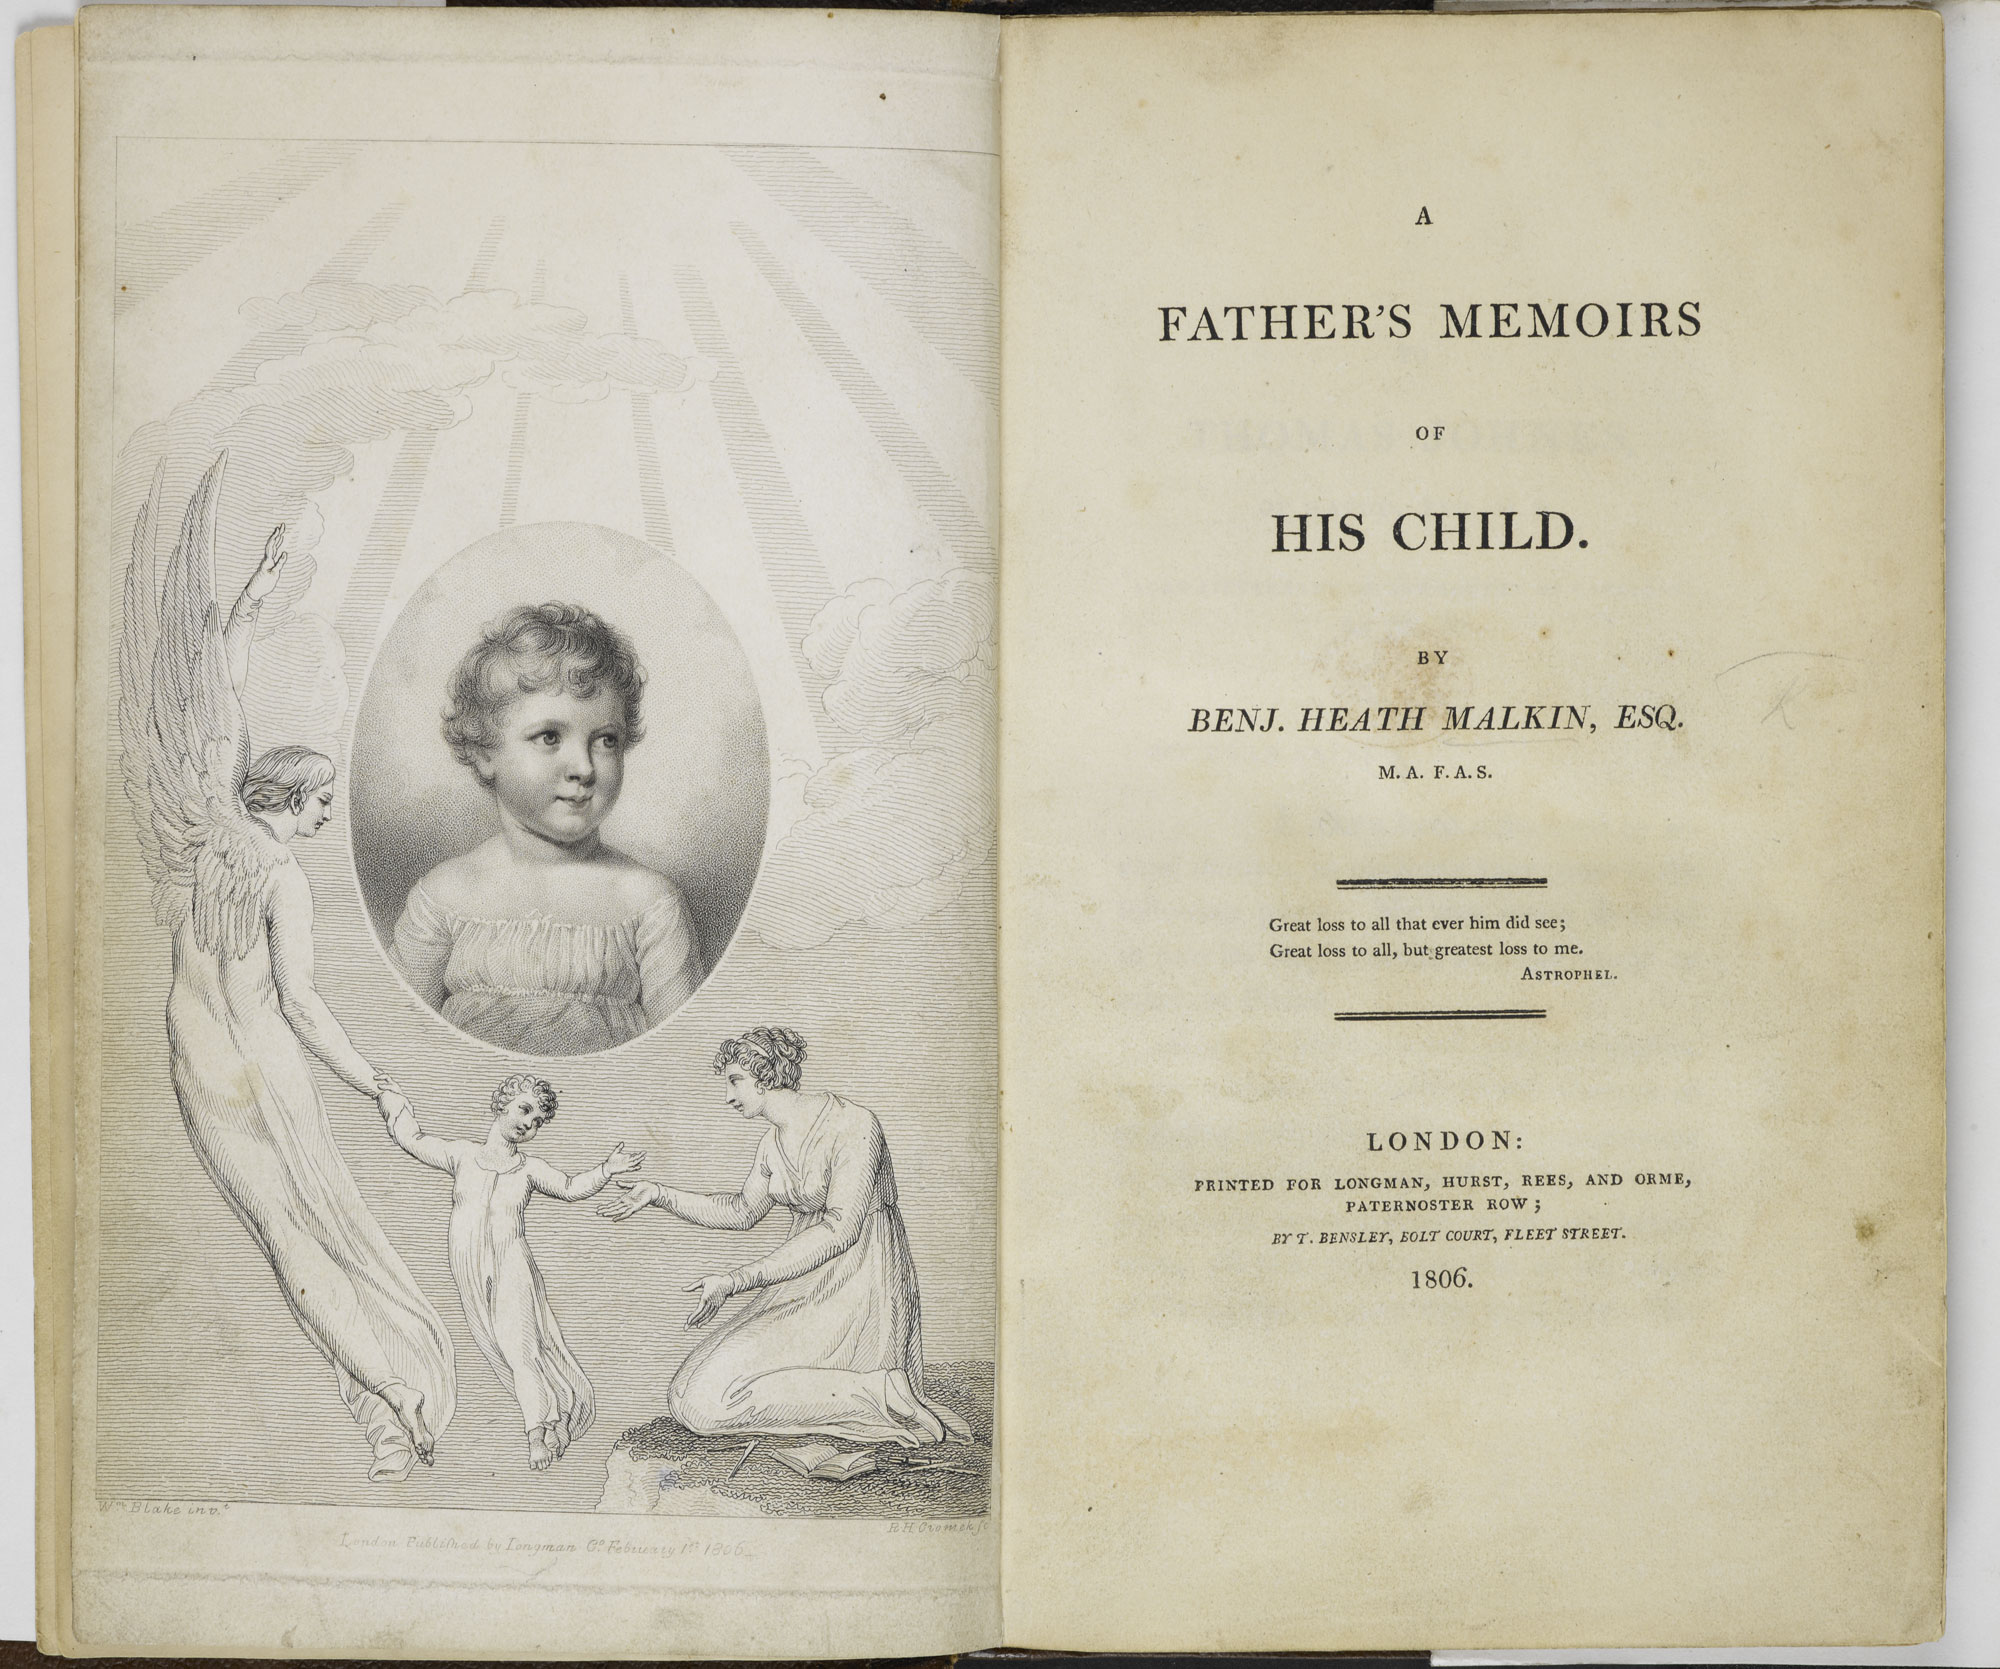 A Father's Memoir of his Child [page: frontispiece and title page]